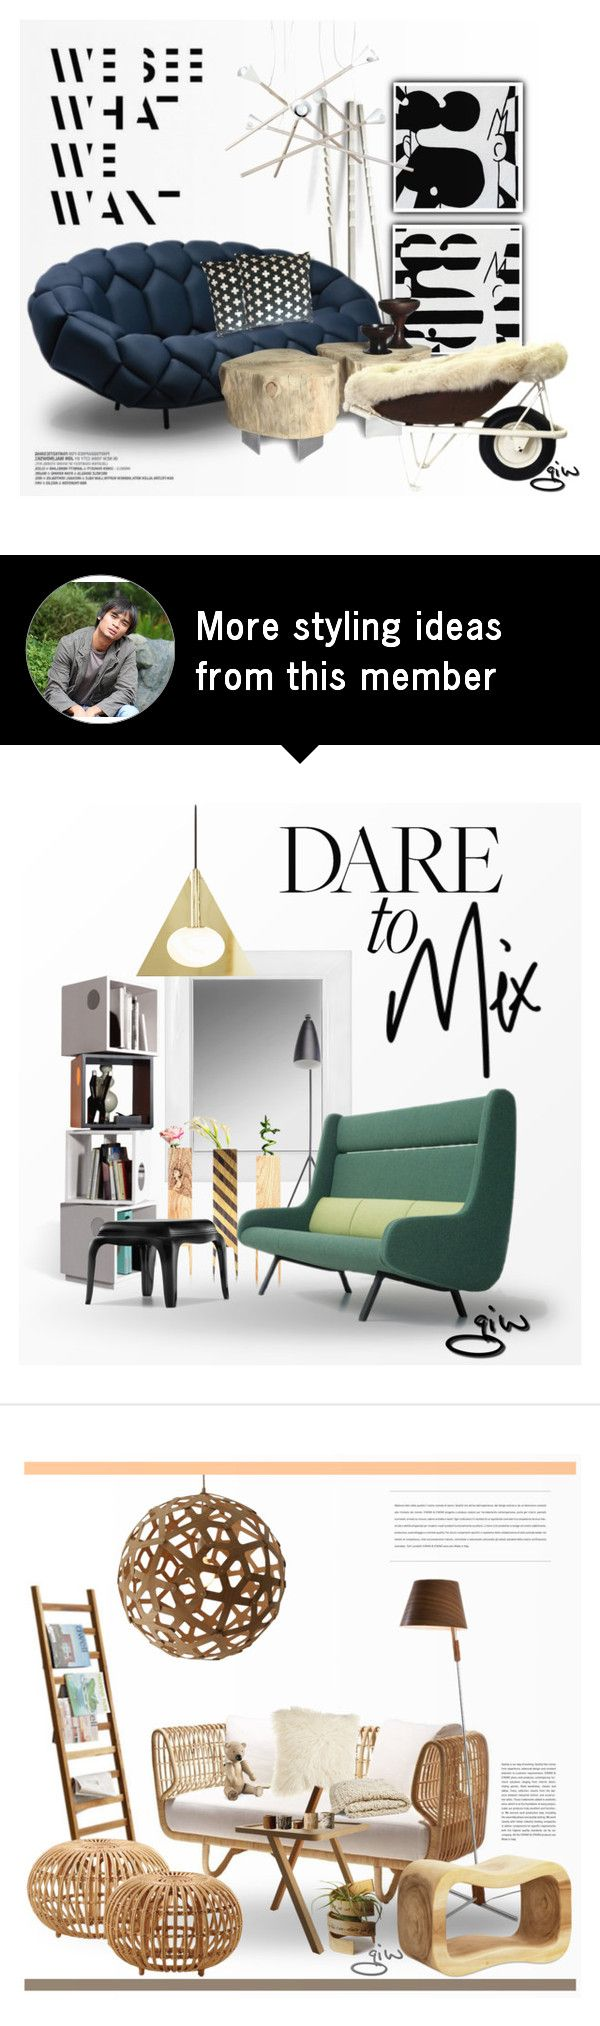 27 best mood board images on pinterest interior decorating by ian giw on polyvore featuring interior interiors design homesinterior